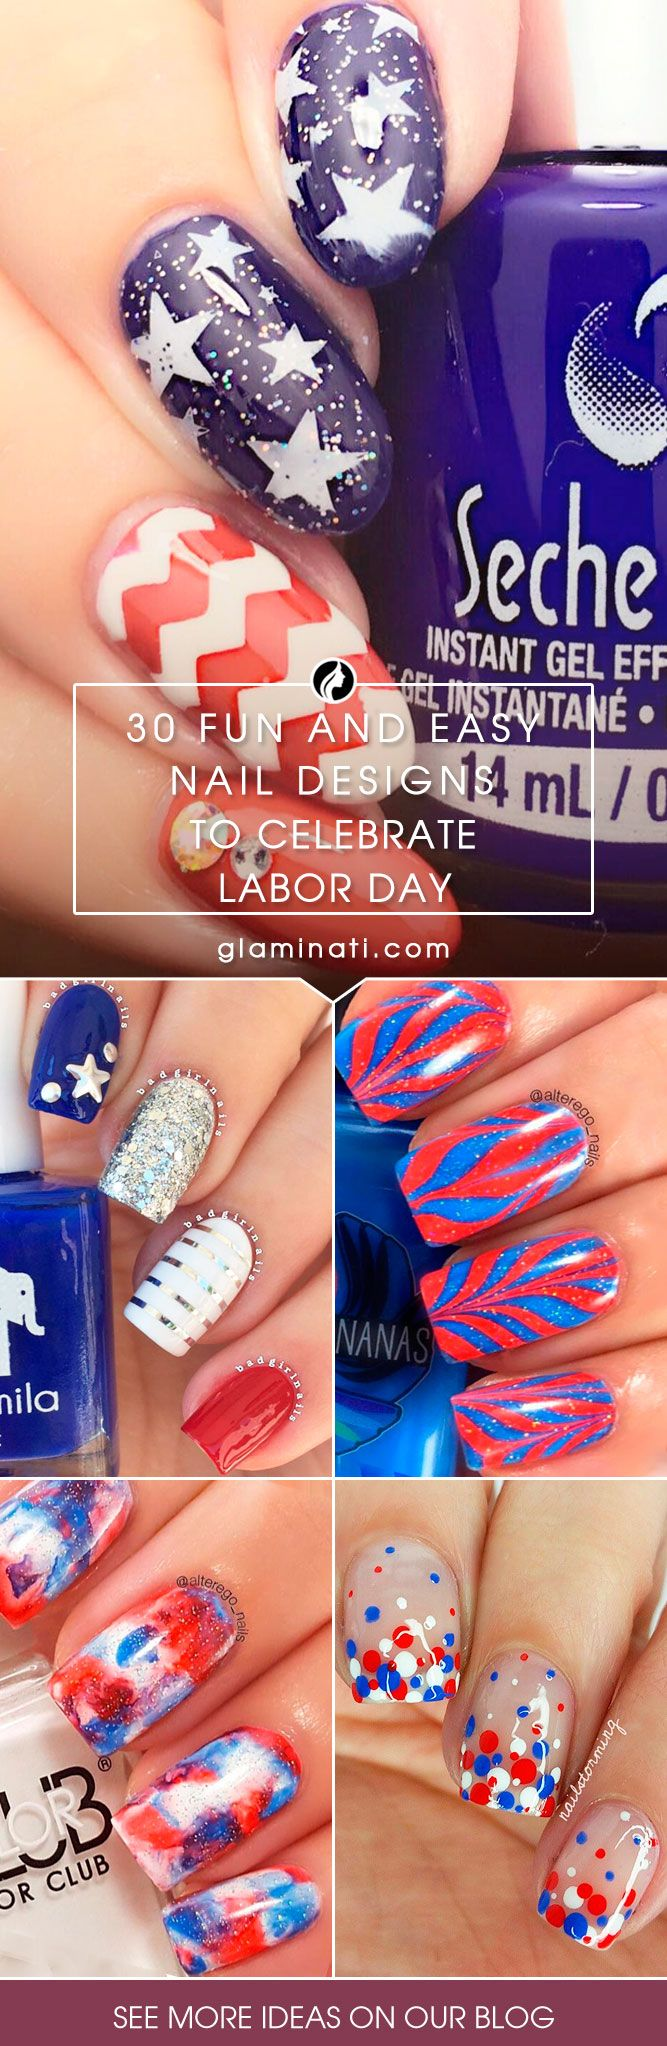 30 Fun Easy Nail Designs to Celebrate Labor Day | Blue nails